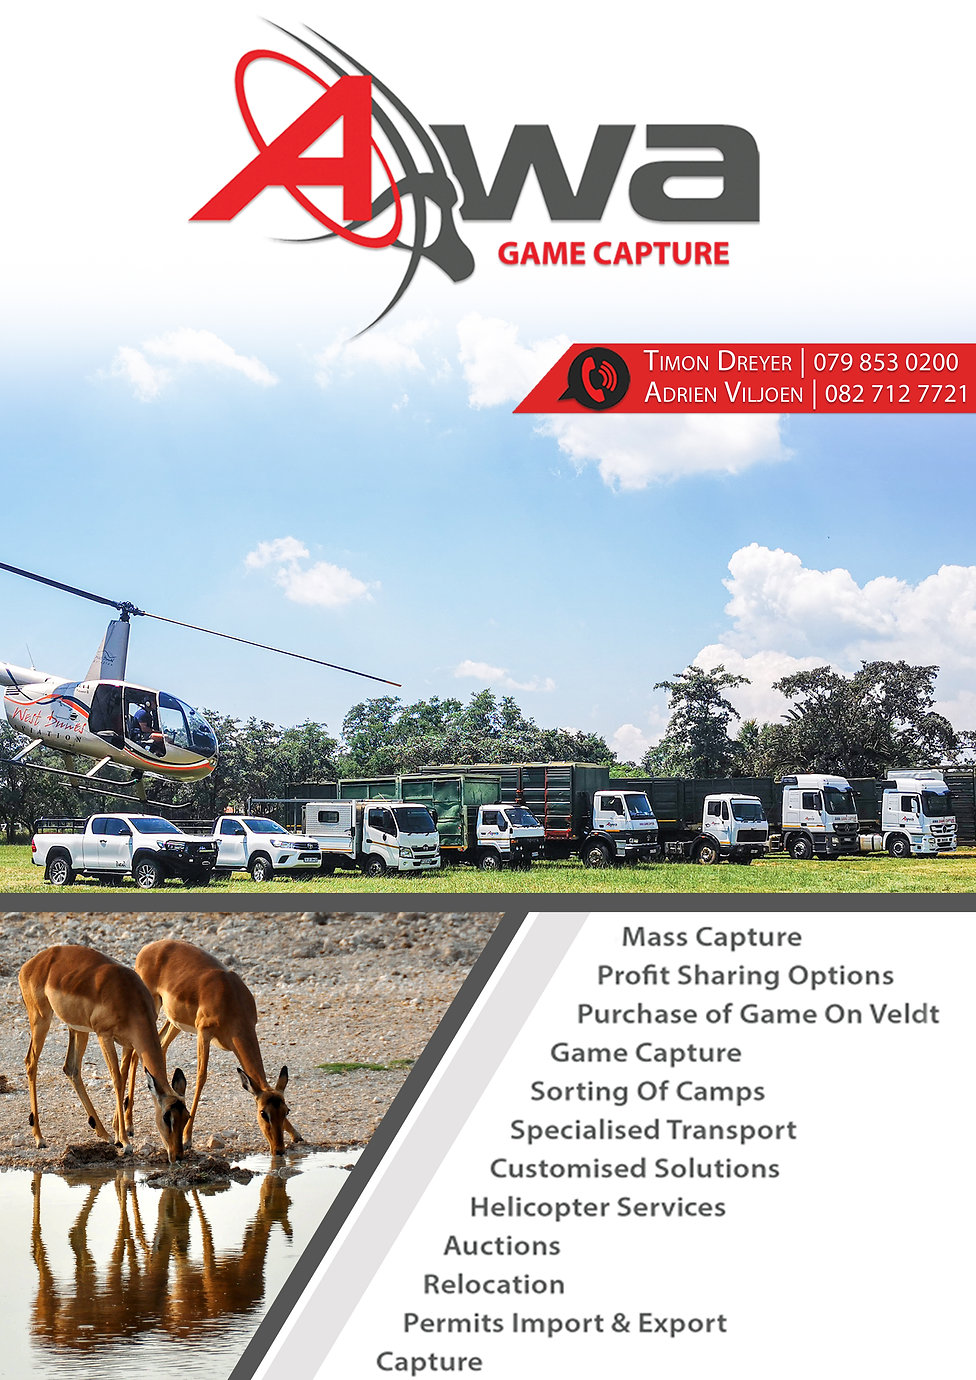 Wildlife Capture and Selling